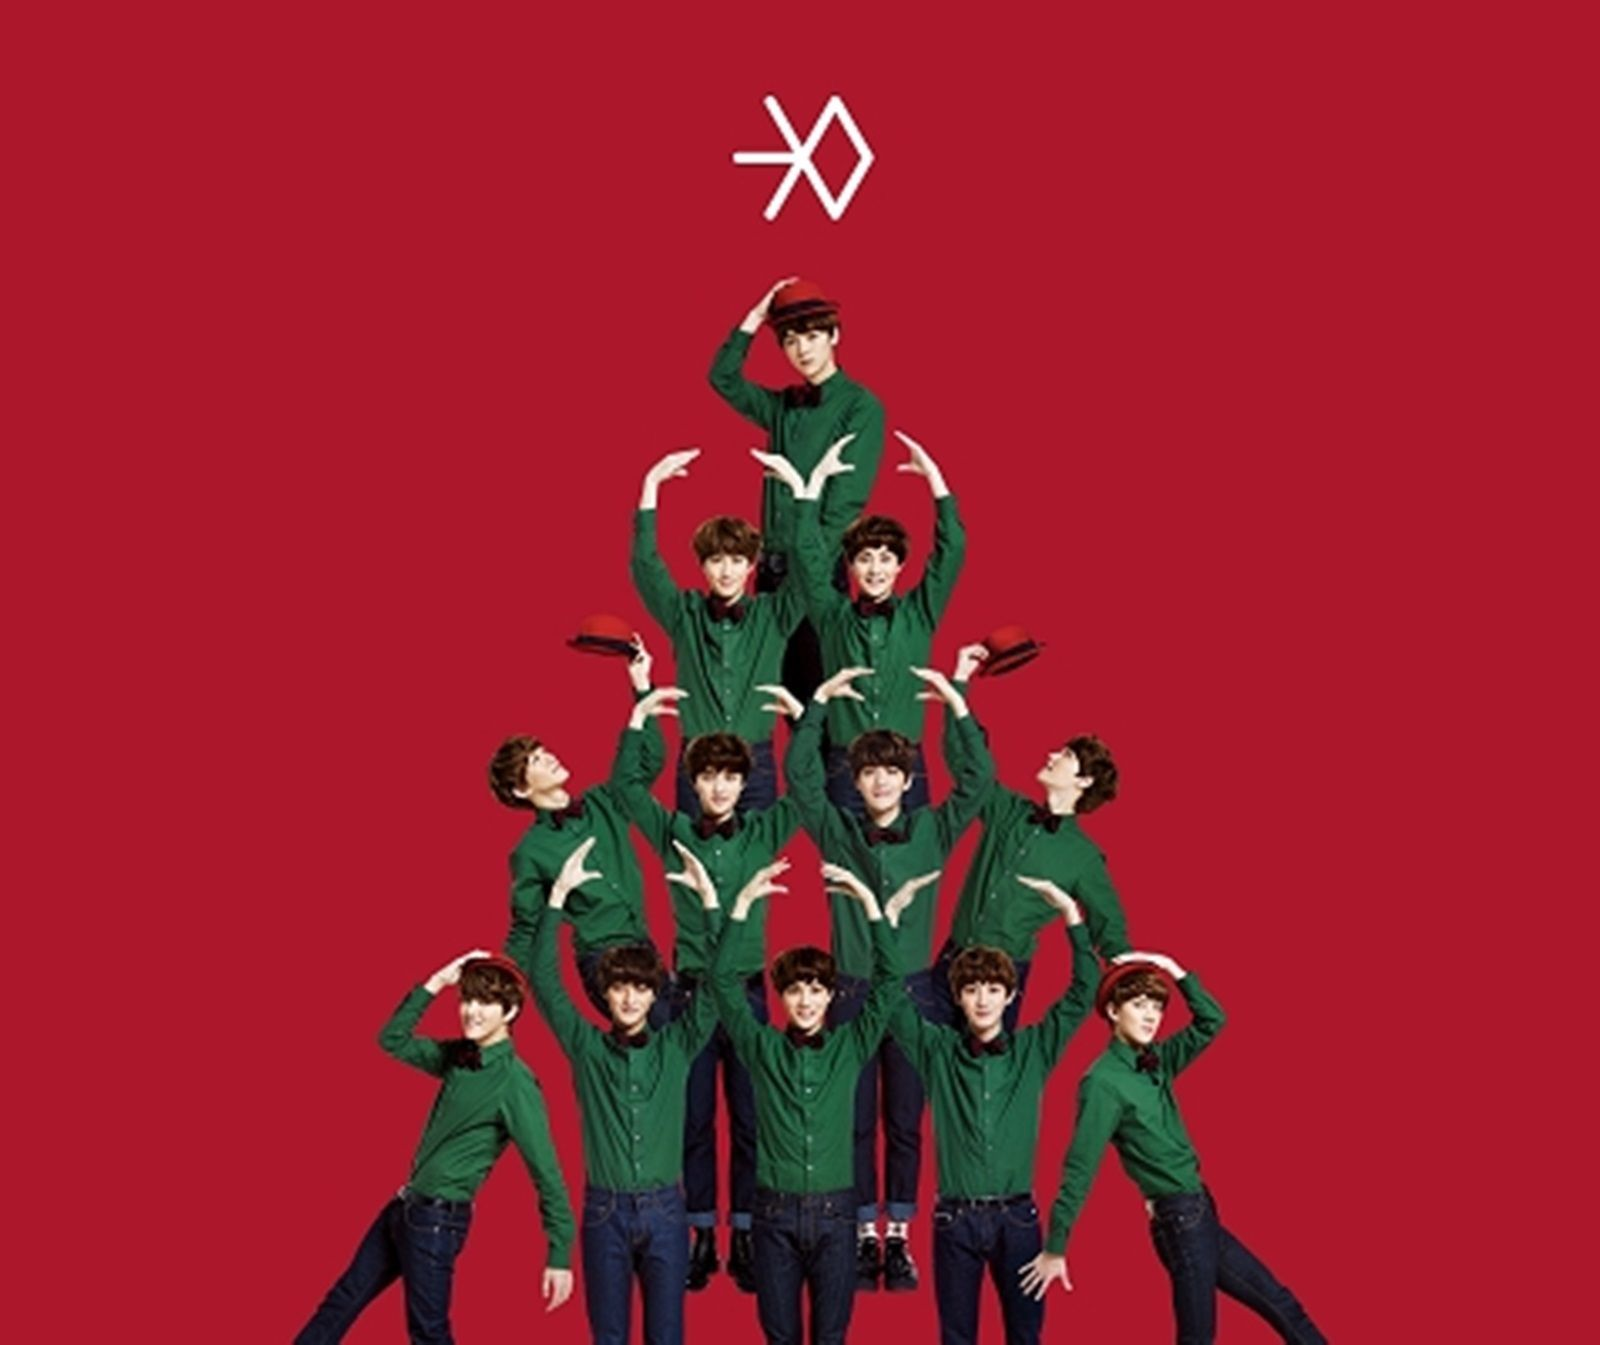 Exo Christmas Album Cover.Pin On Exo